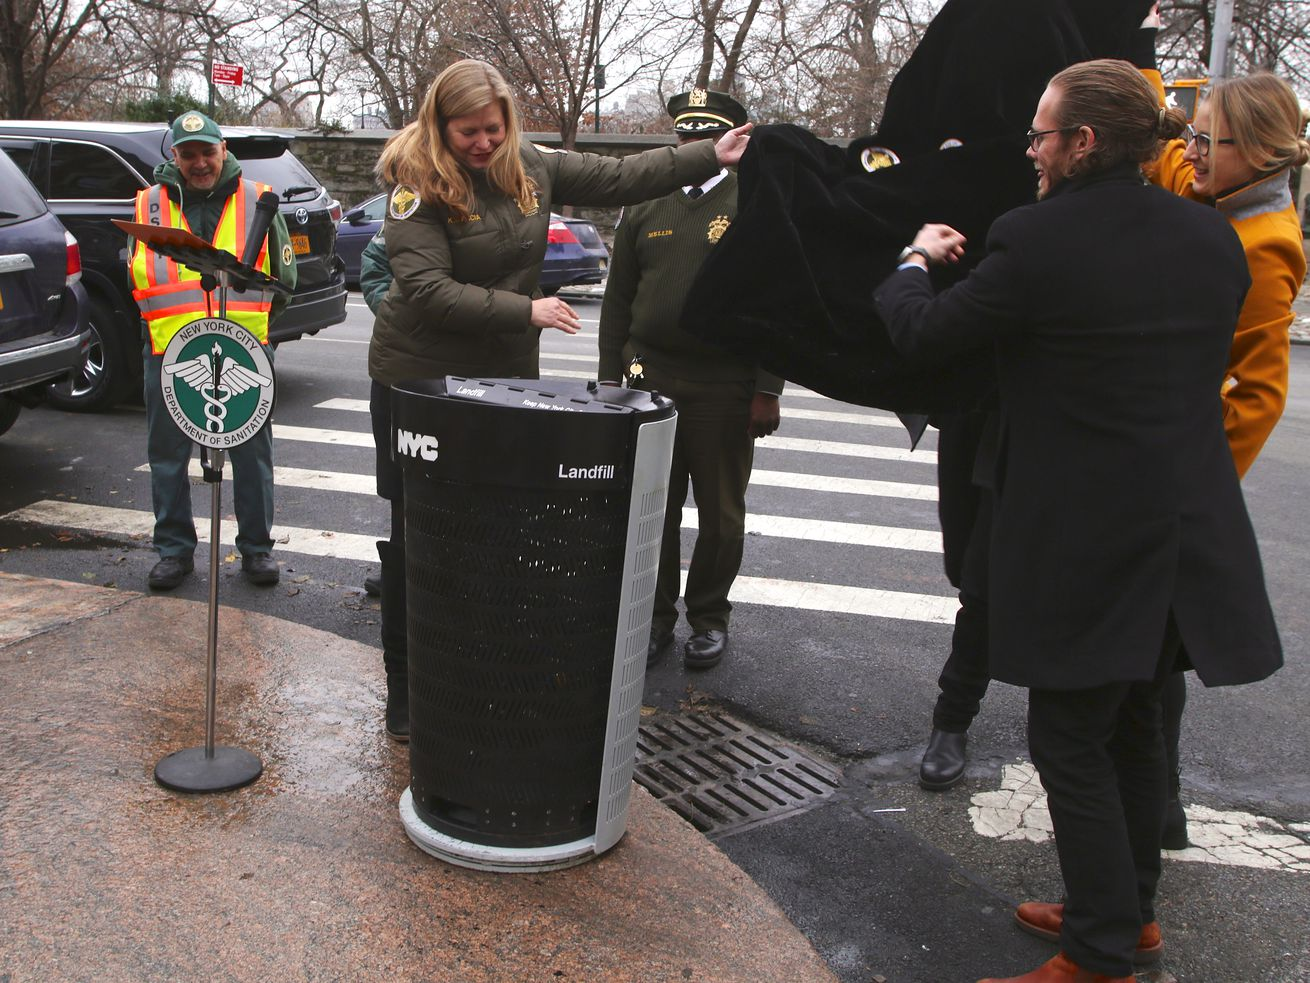 Several individuals stand around a black and grey trash can in a street corner.